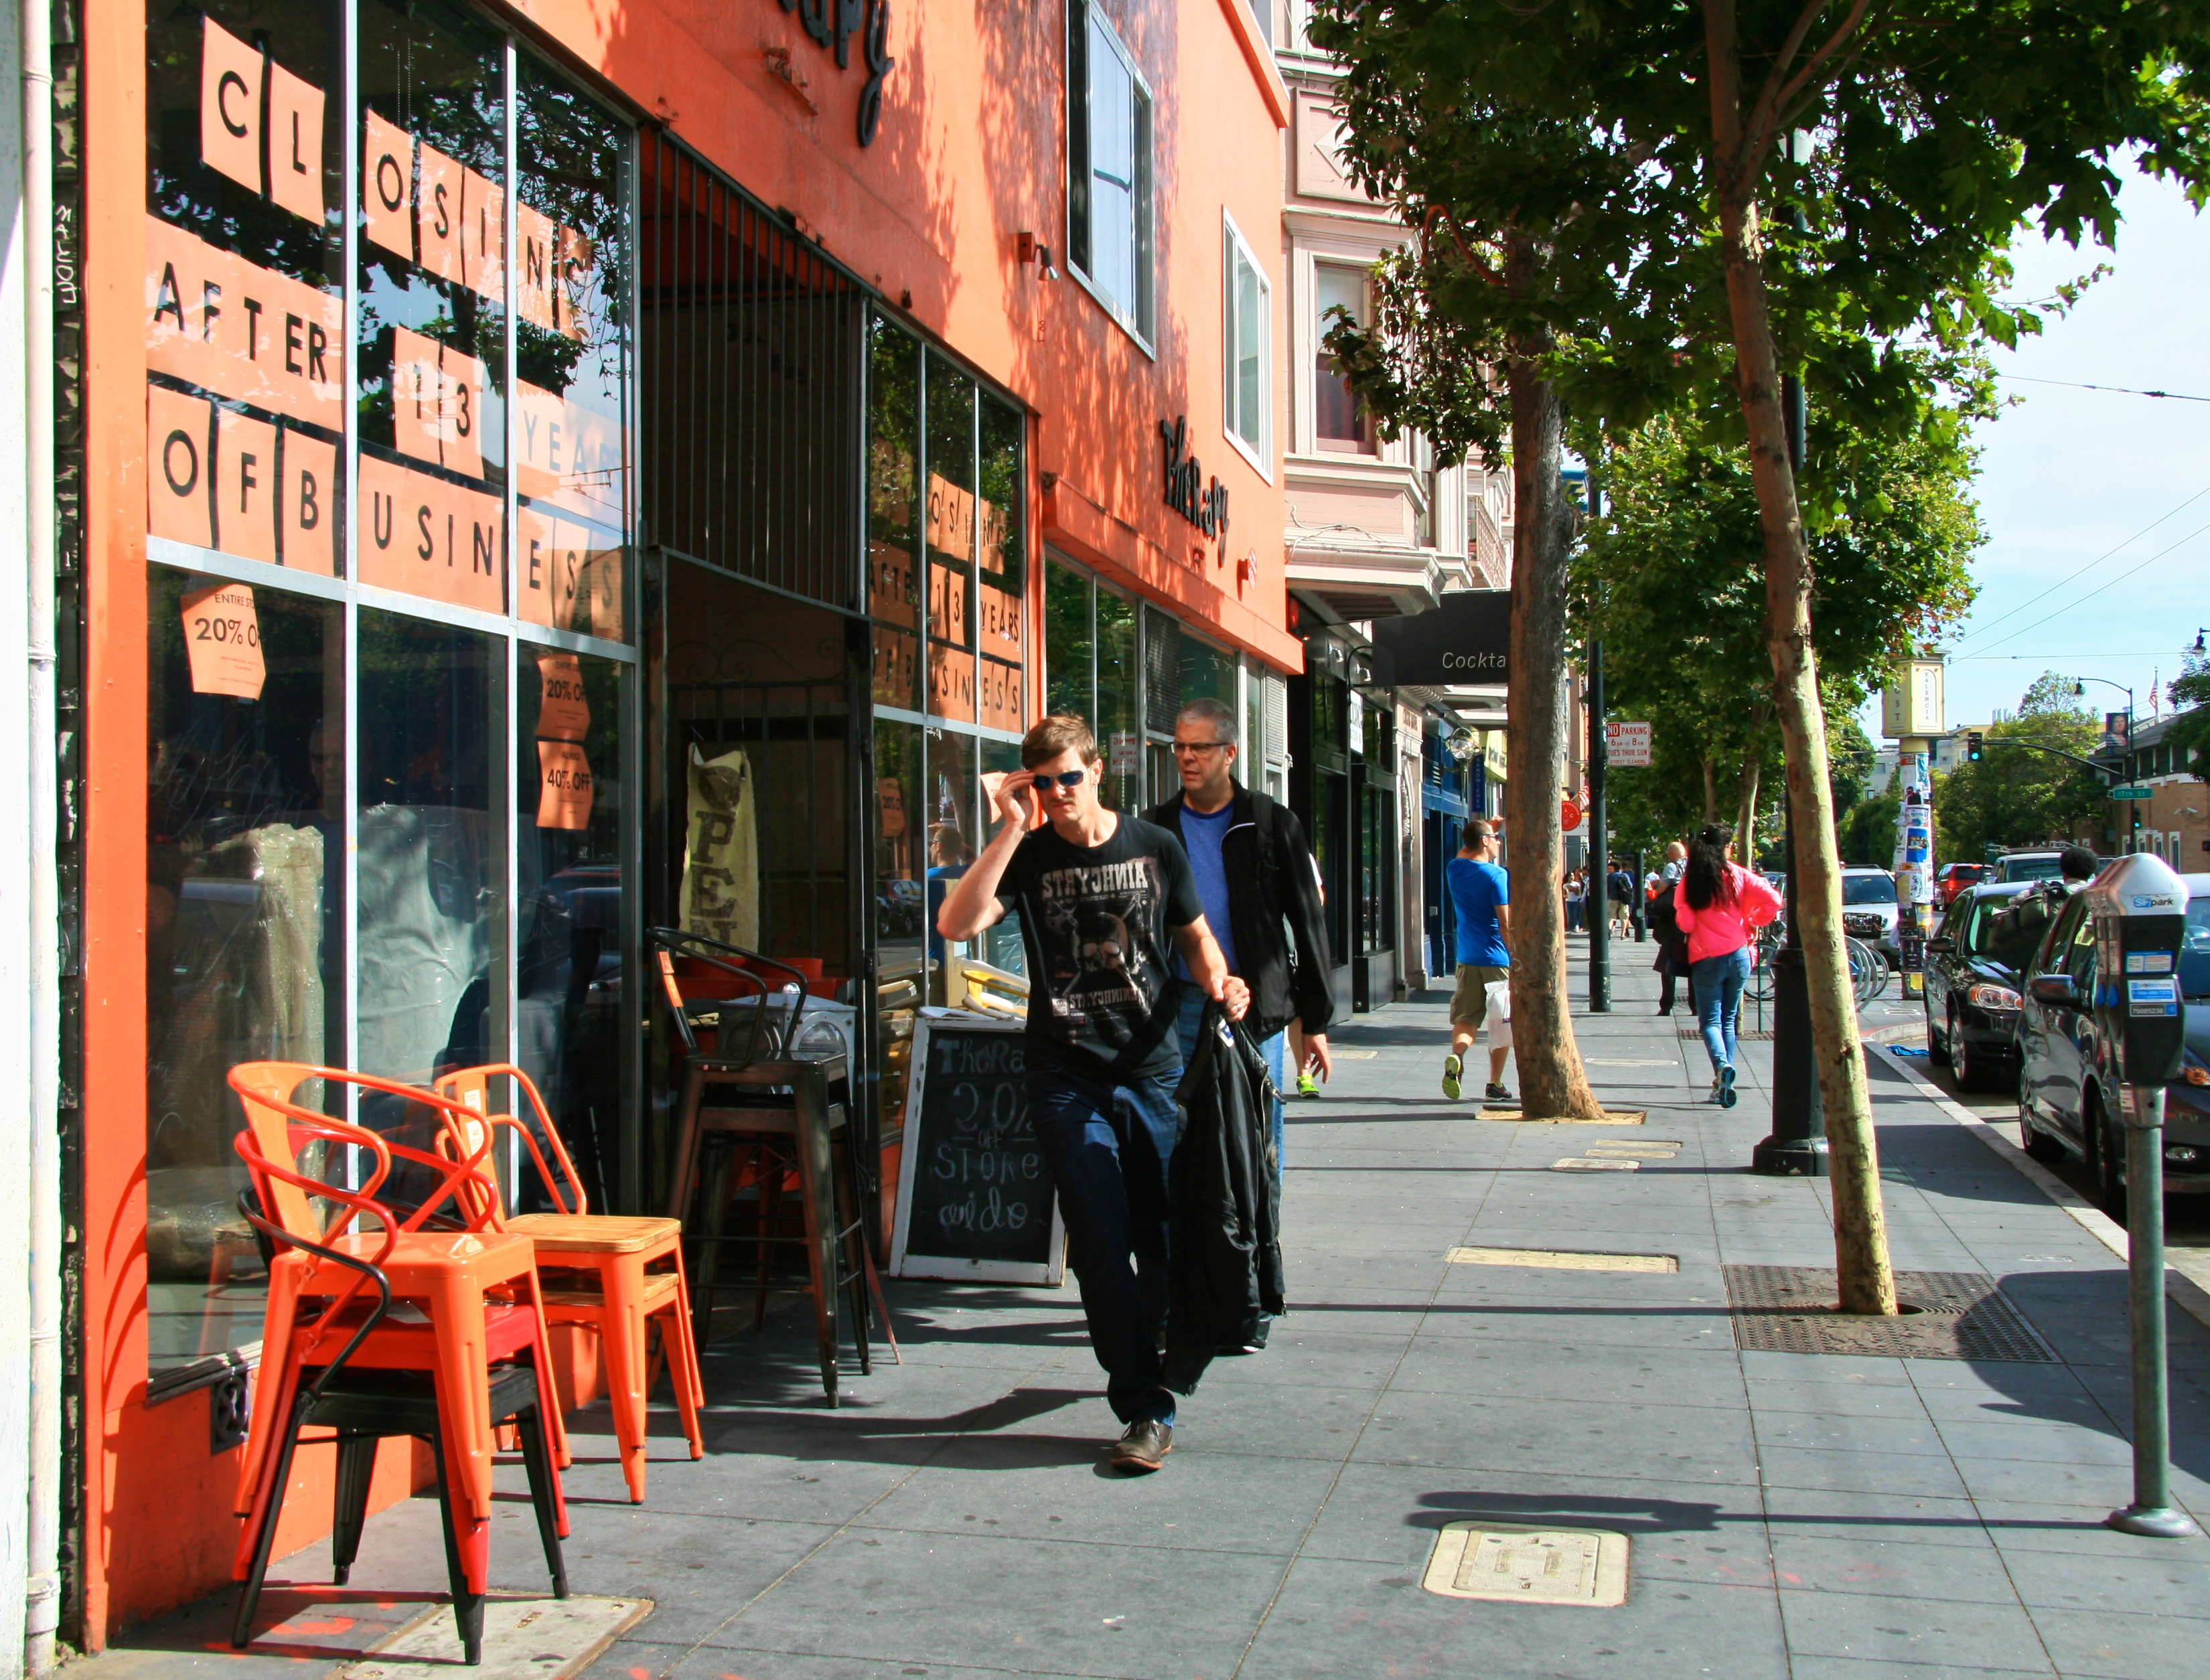 Elegant Mission Furniture Store Closing After Years San Francisco California  With Furniture Stores San Francisco Ca